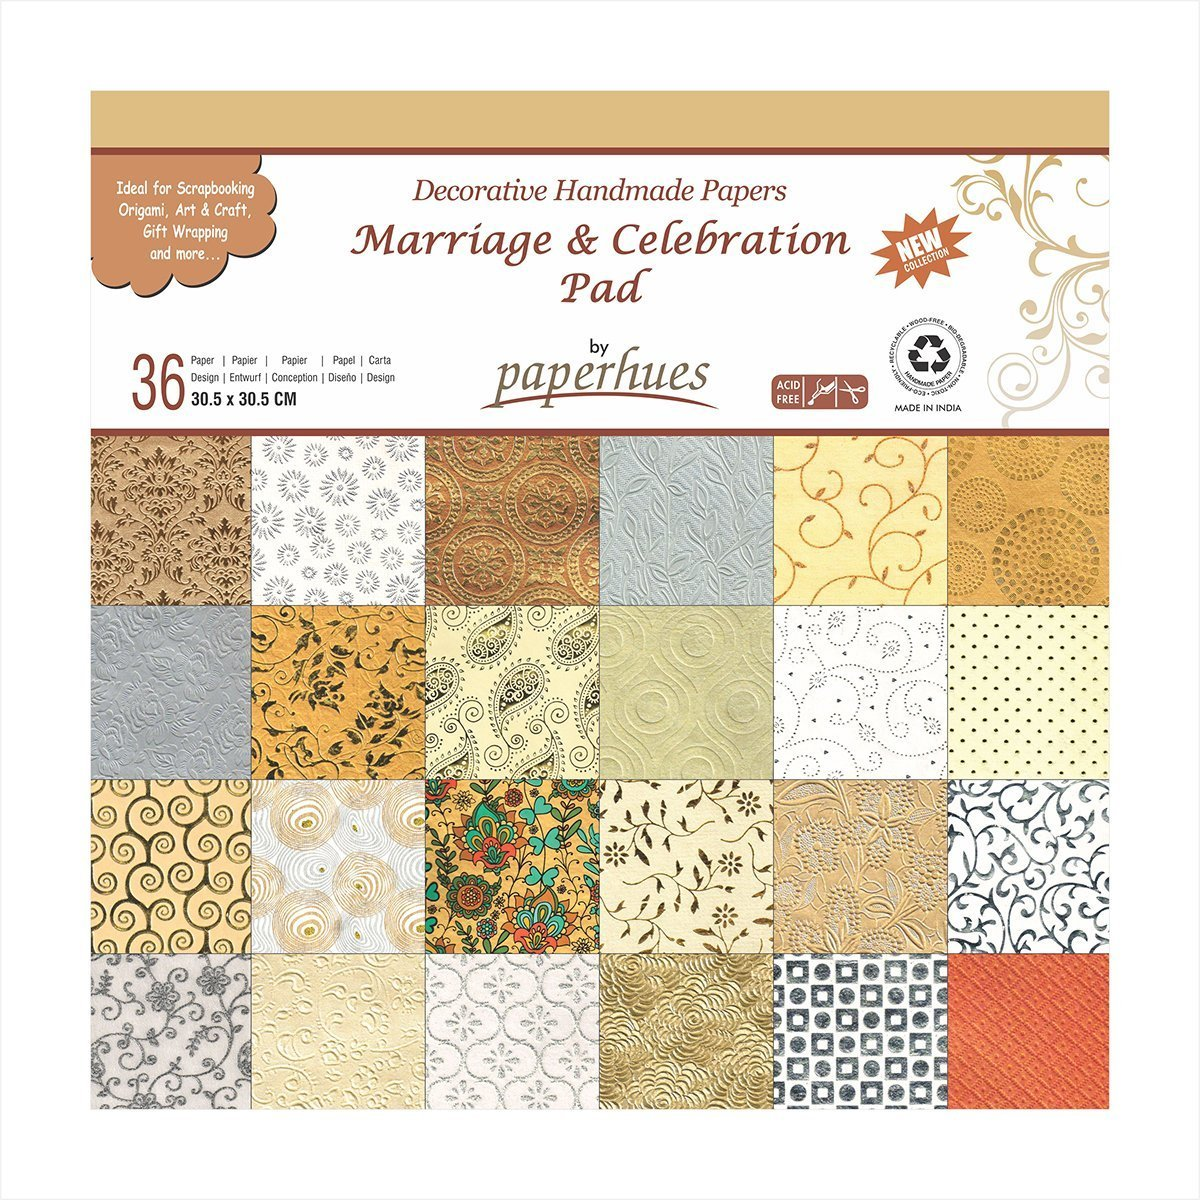 12x12 wedding scrapbook paper - Amazon Com Paperhues Wedding Scrapbook Paper 12x12 Pad 36 Sheets Celebration Pad Decorative Specialty Handmade Origami Paper Pad For Wedding Cards